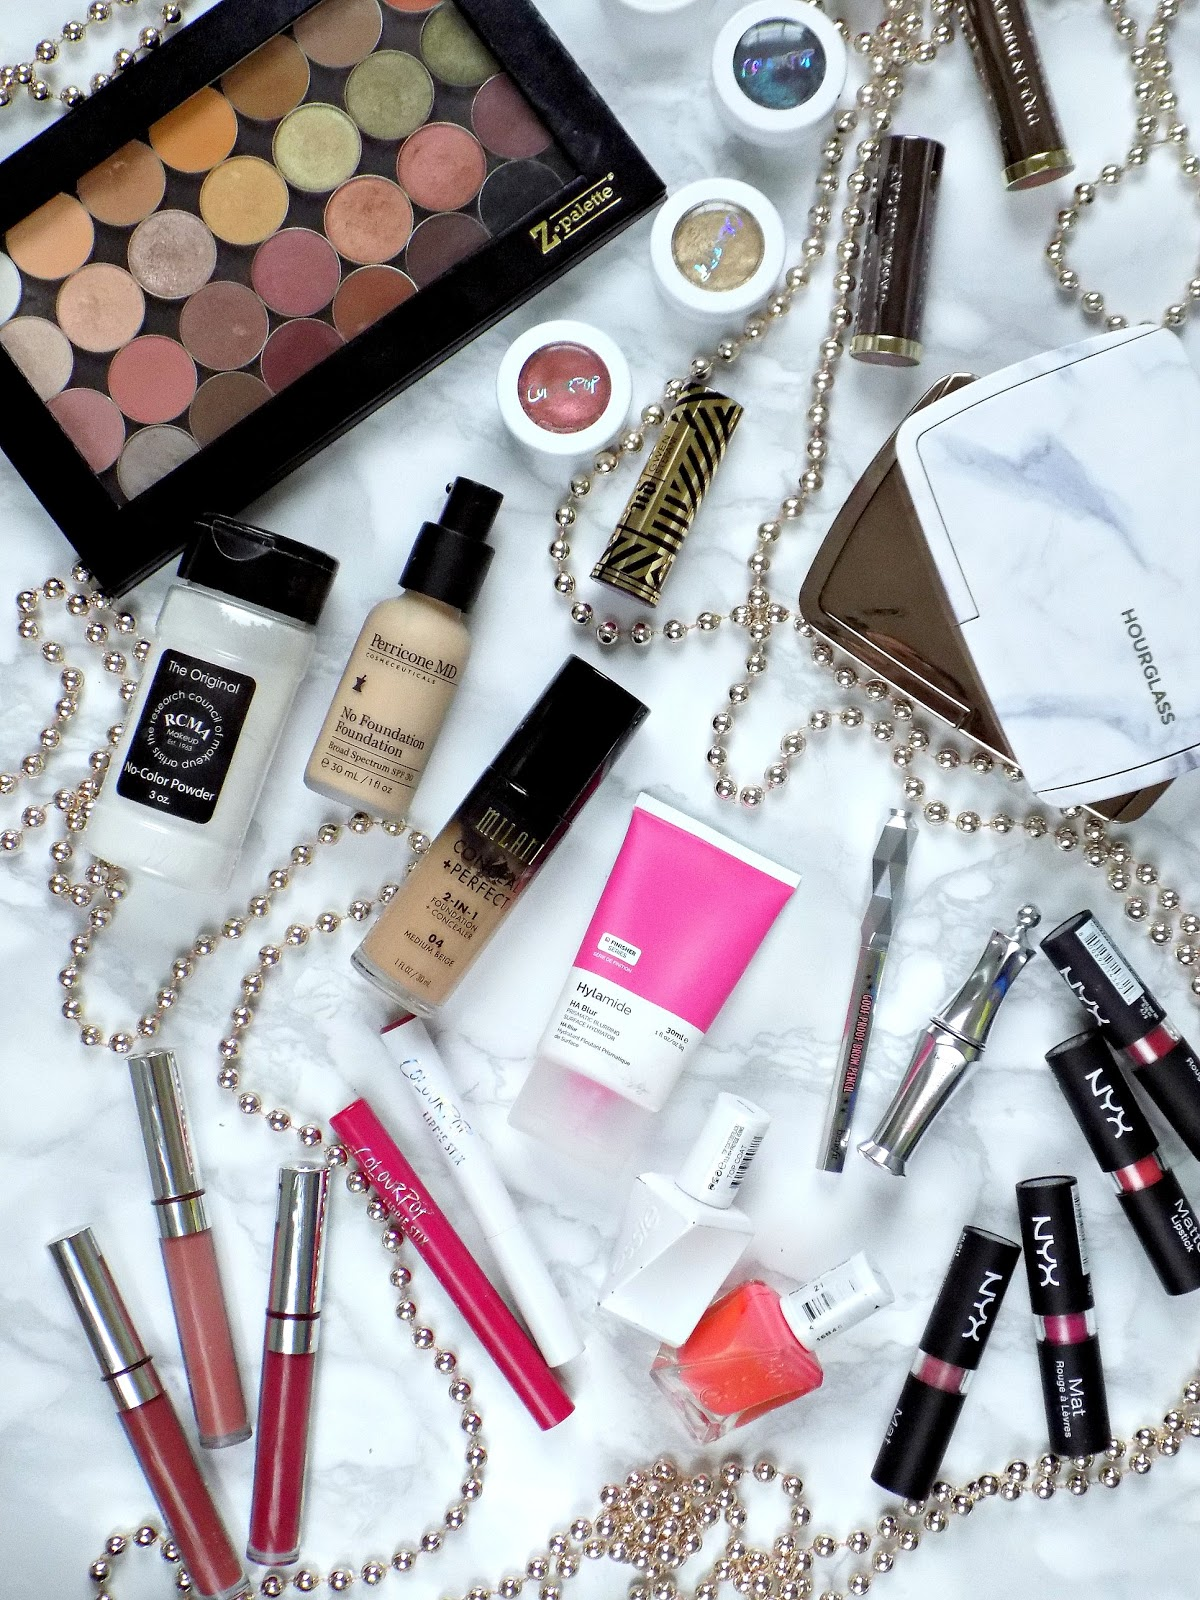 My favourite beauty discoveries of 2016 - makeup